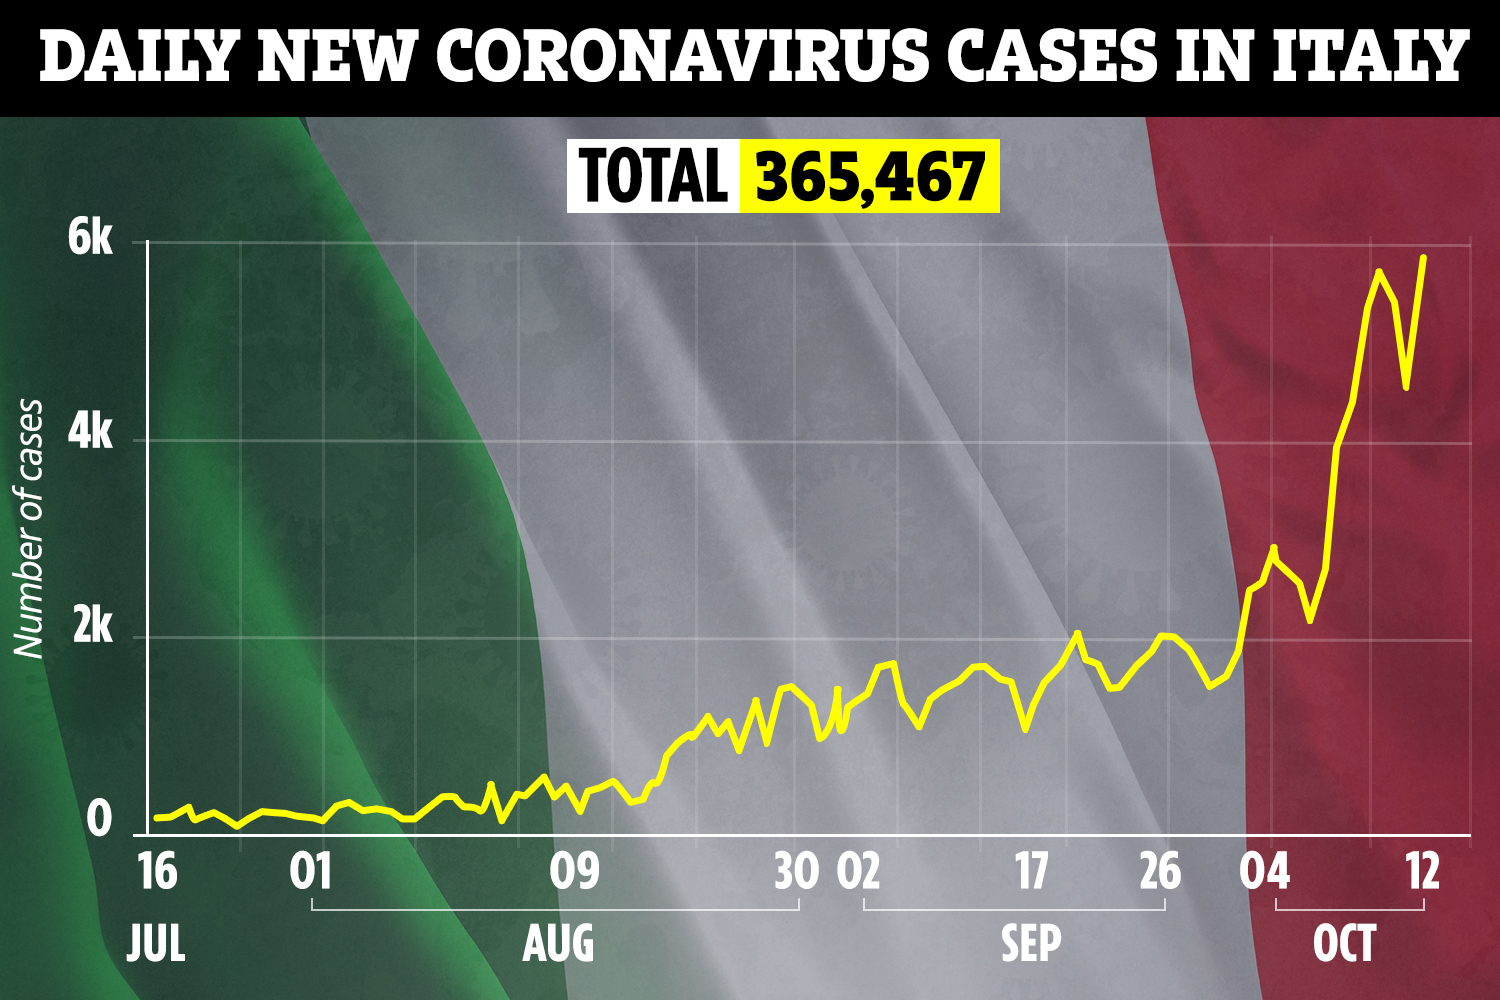 Italy's cases have leapt in recent days